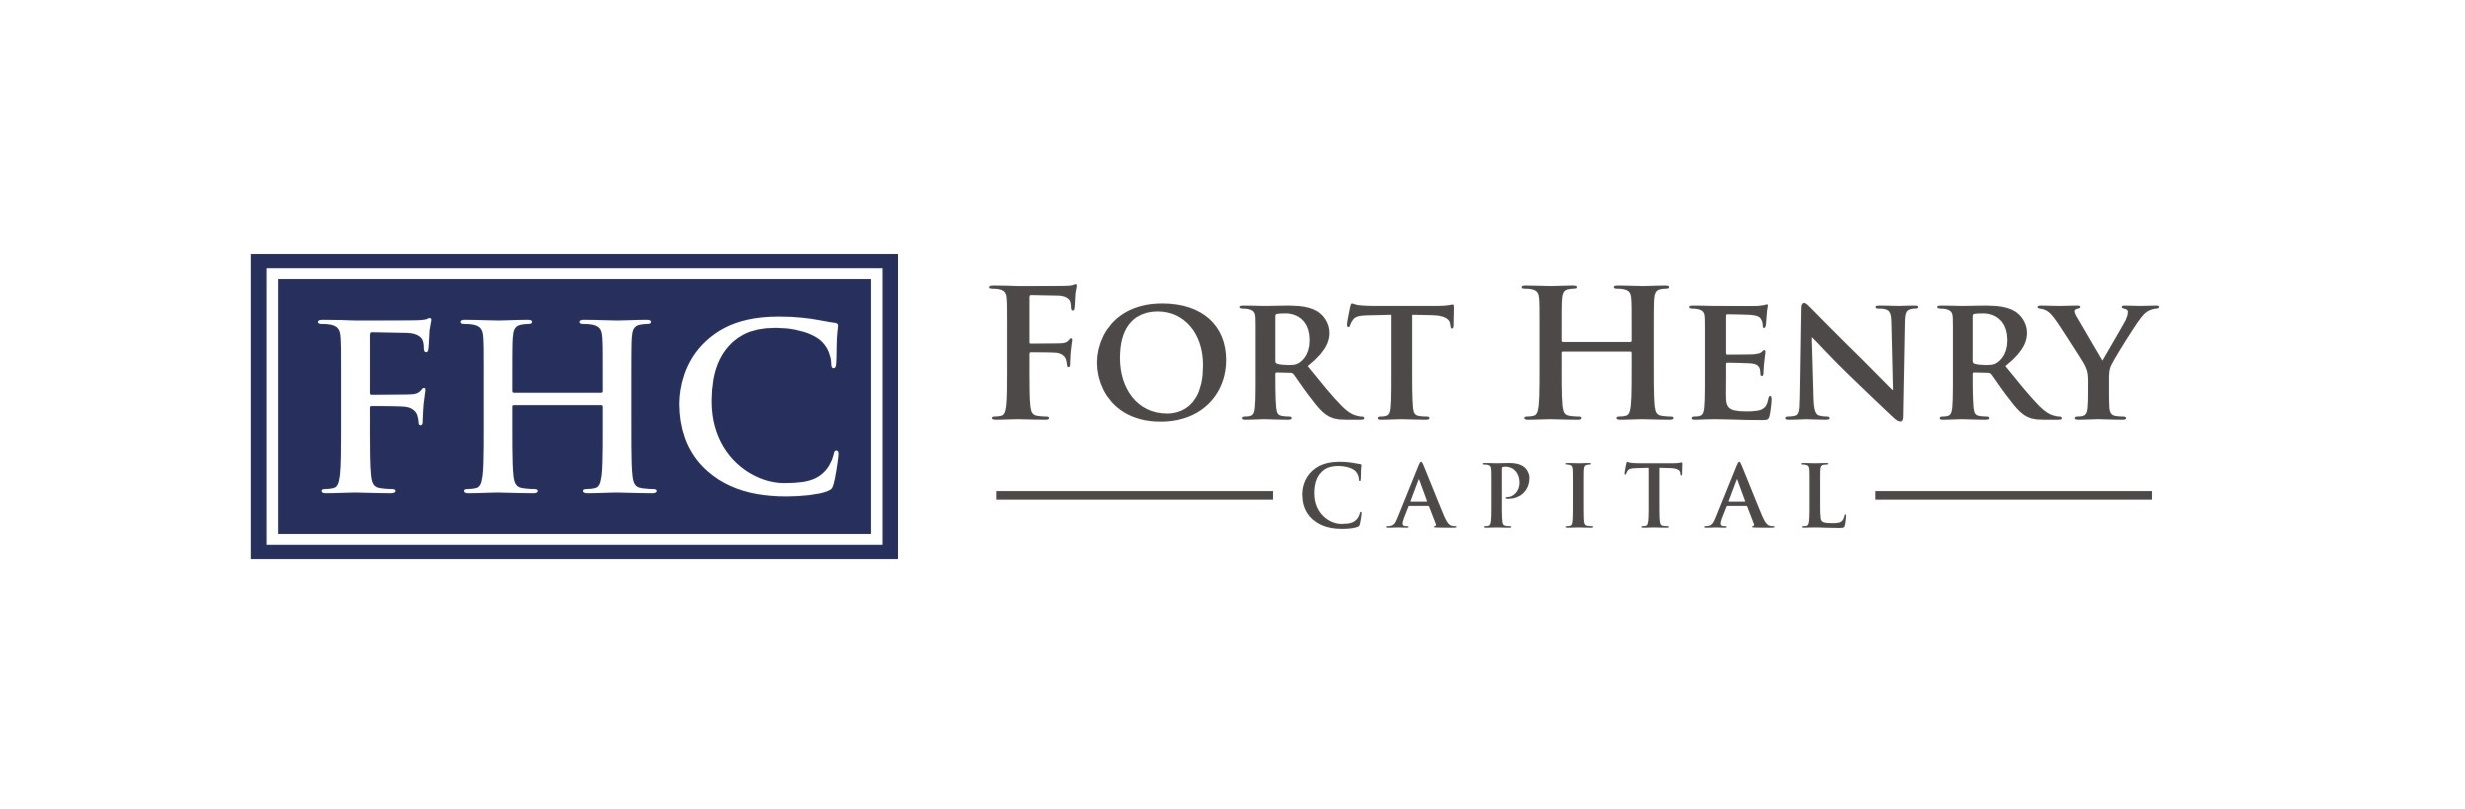 Fort Henry Capital Logo